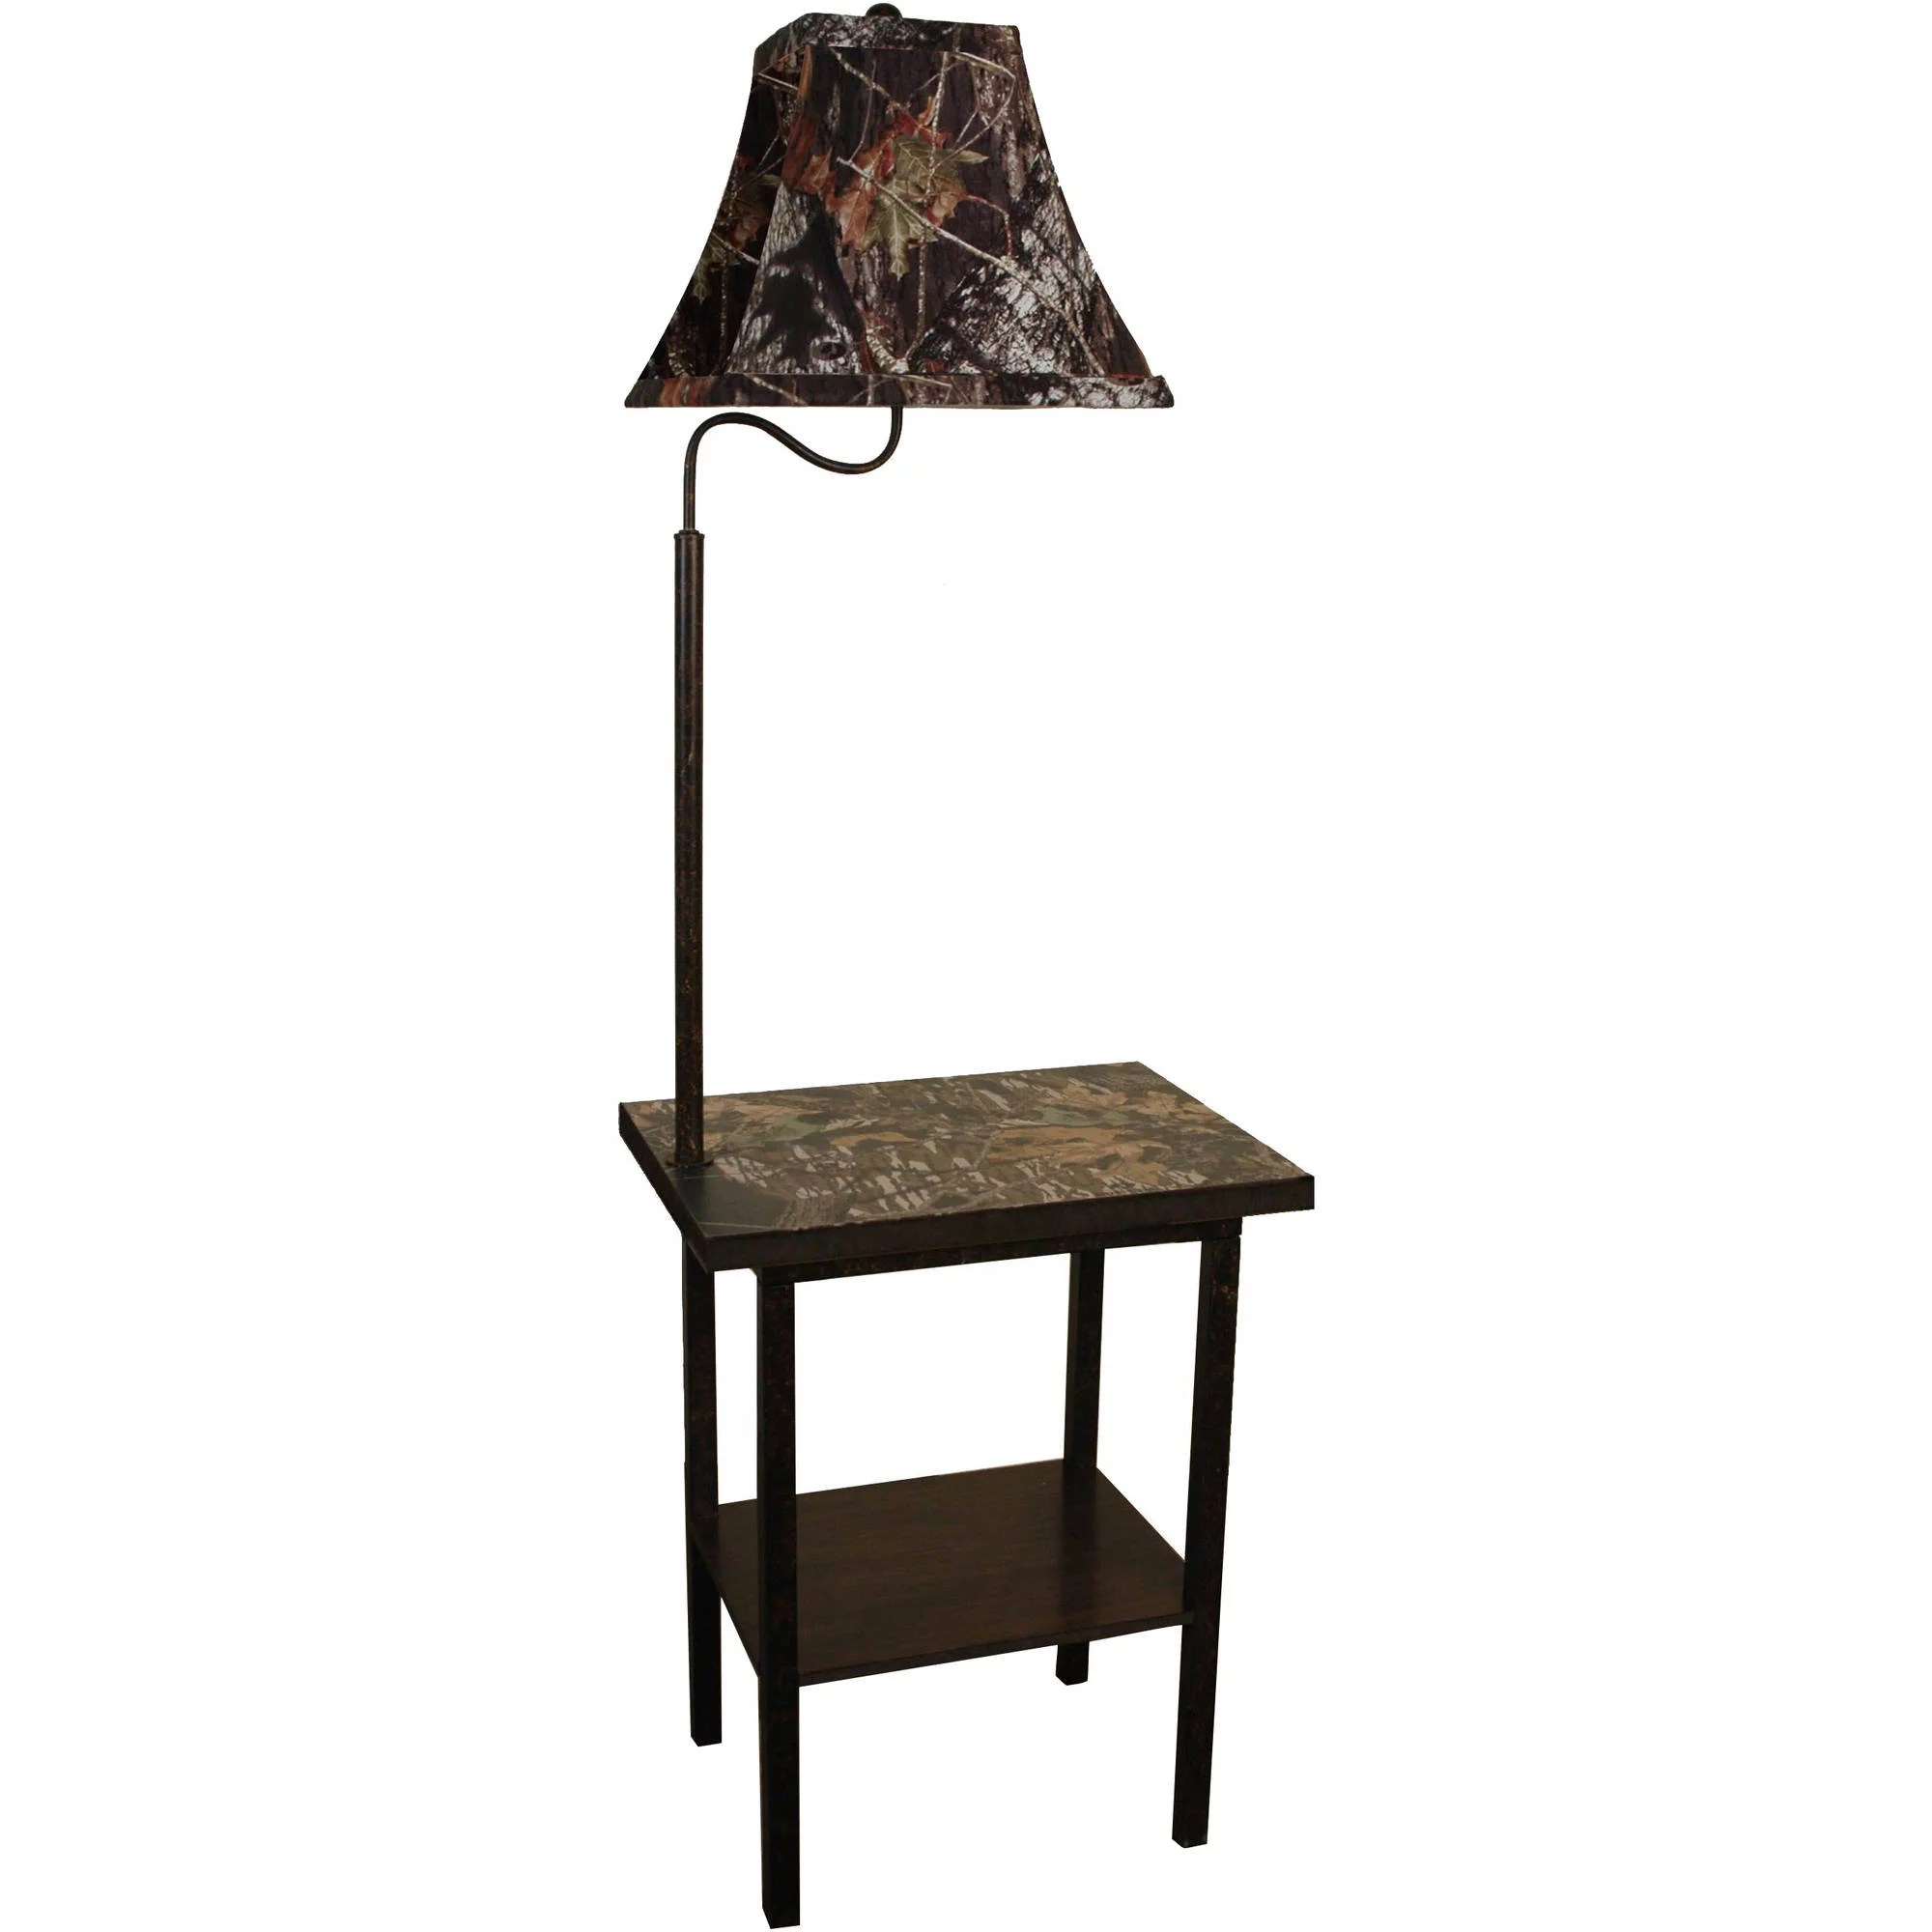 End Table With Lamp Built In Mossy Oak Furniture Floor Lamp Brown